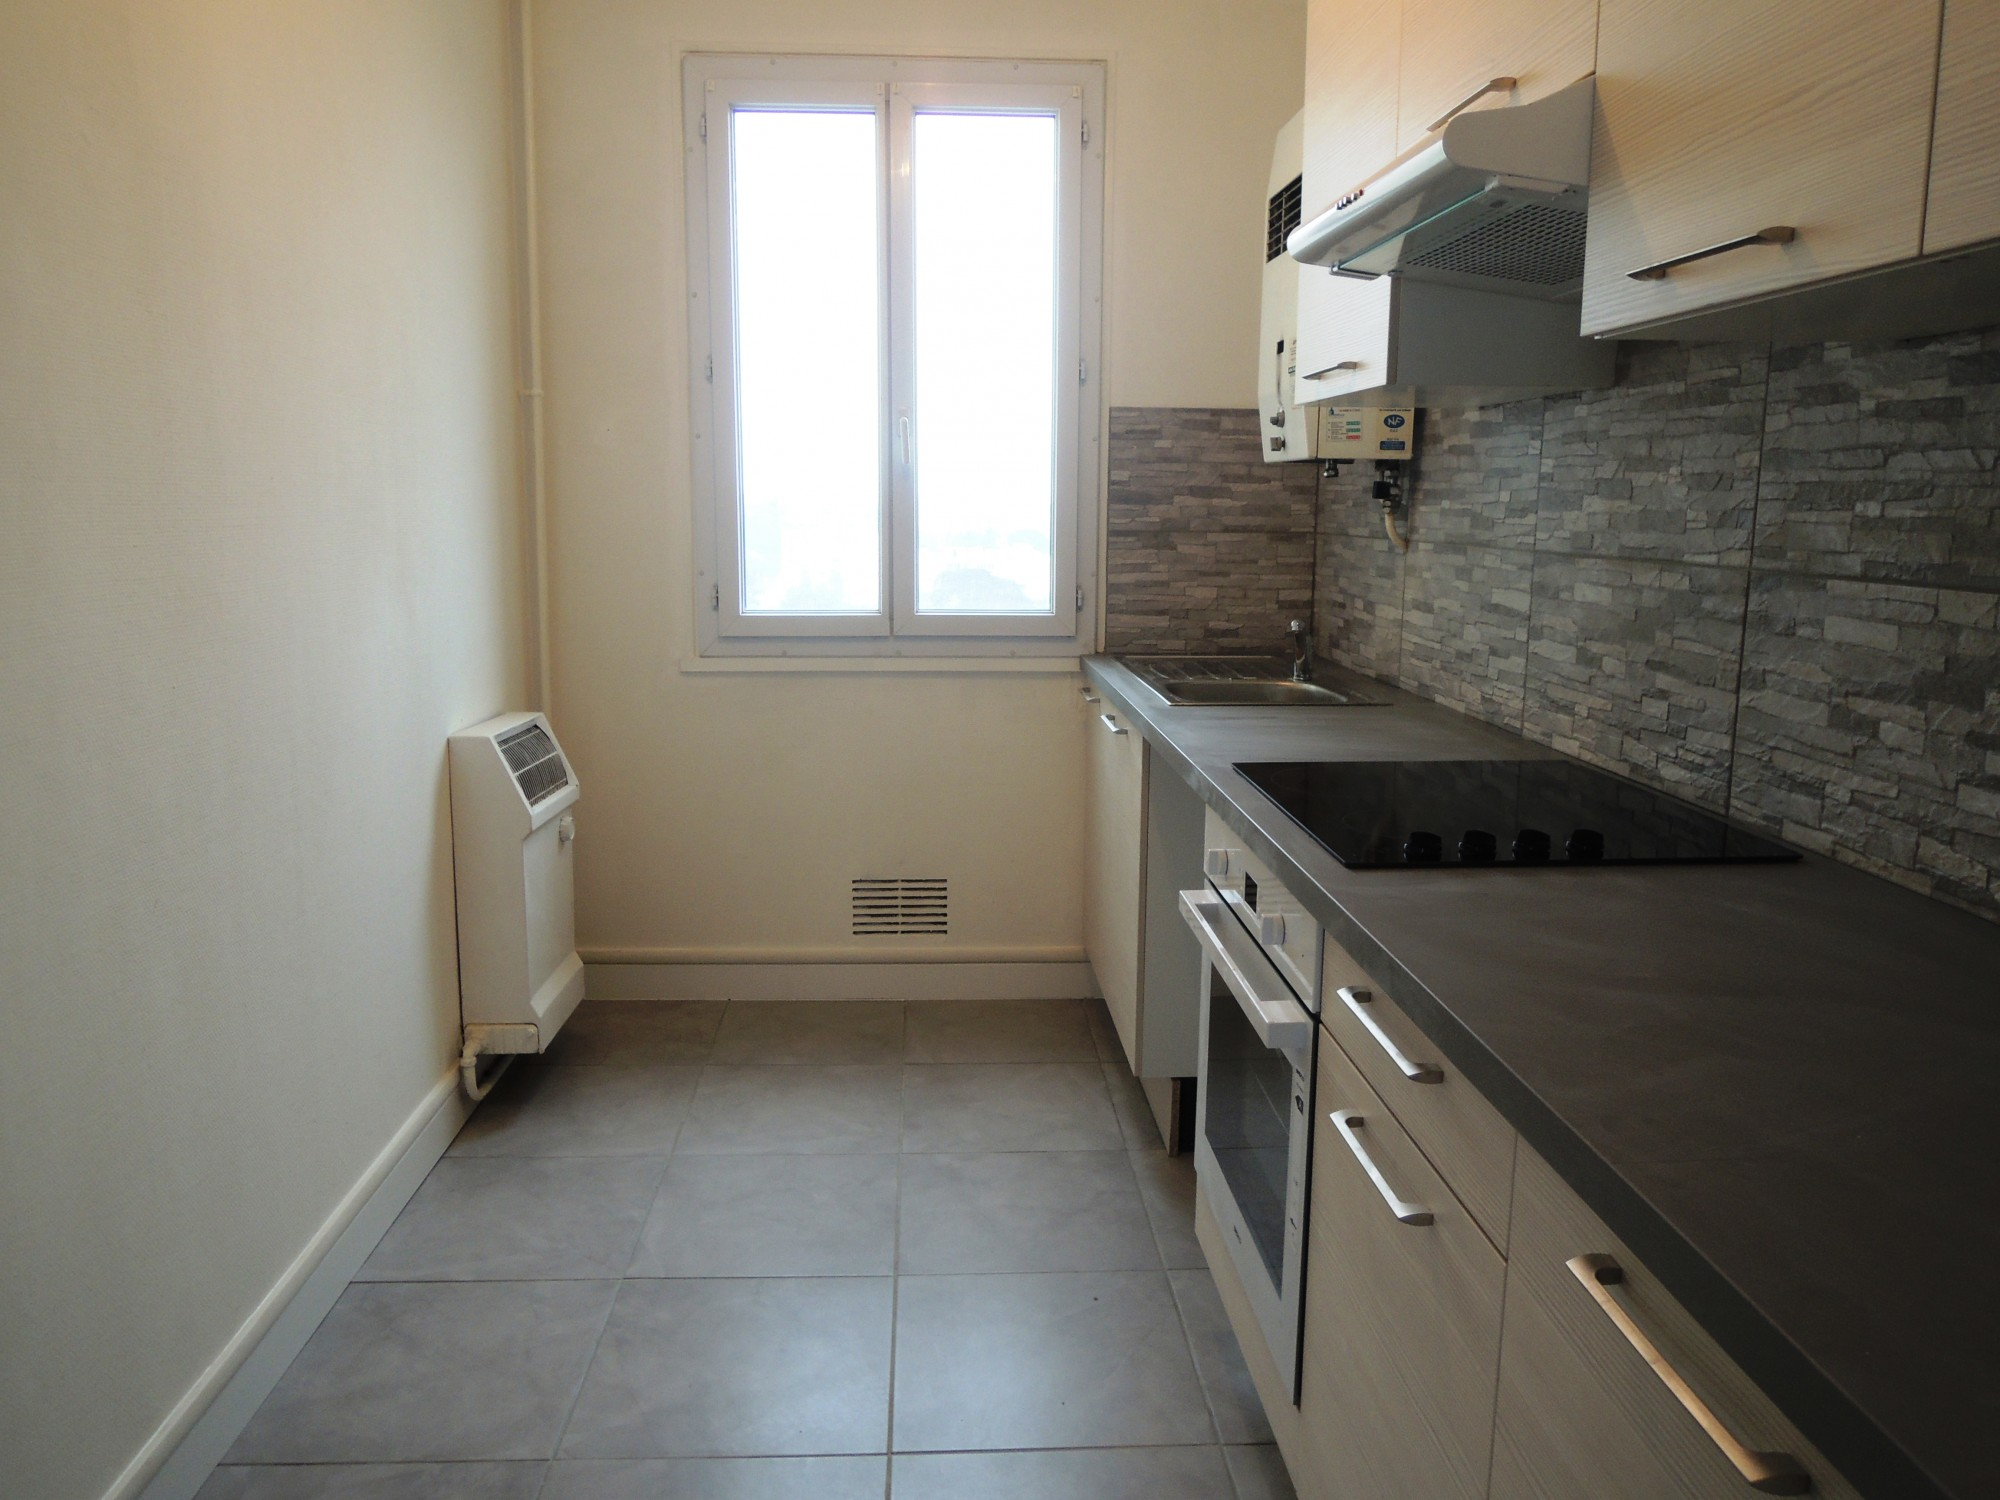 Location appartement t3 f3 bordeaux cauderan bru immobilier for Location appartement bordeaux oralia